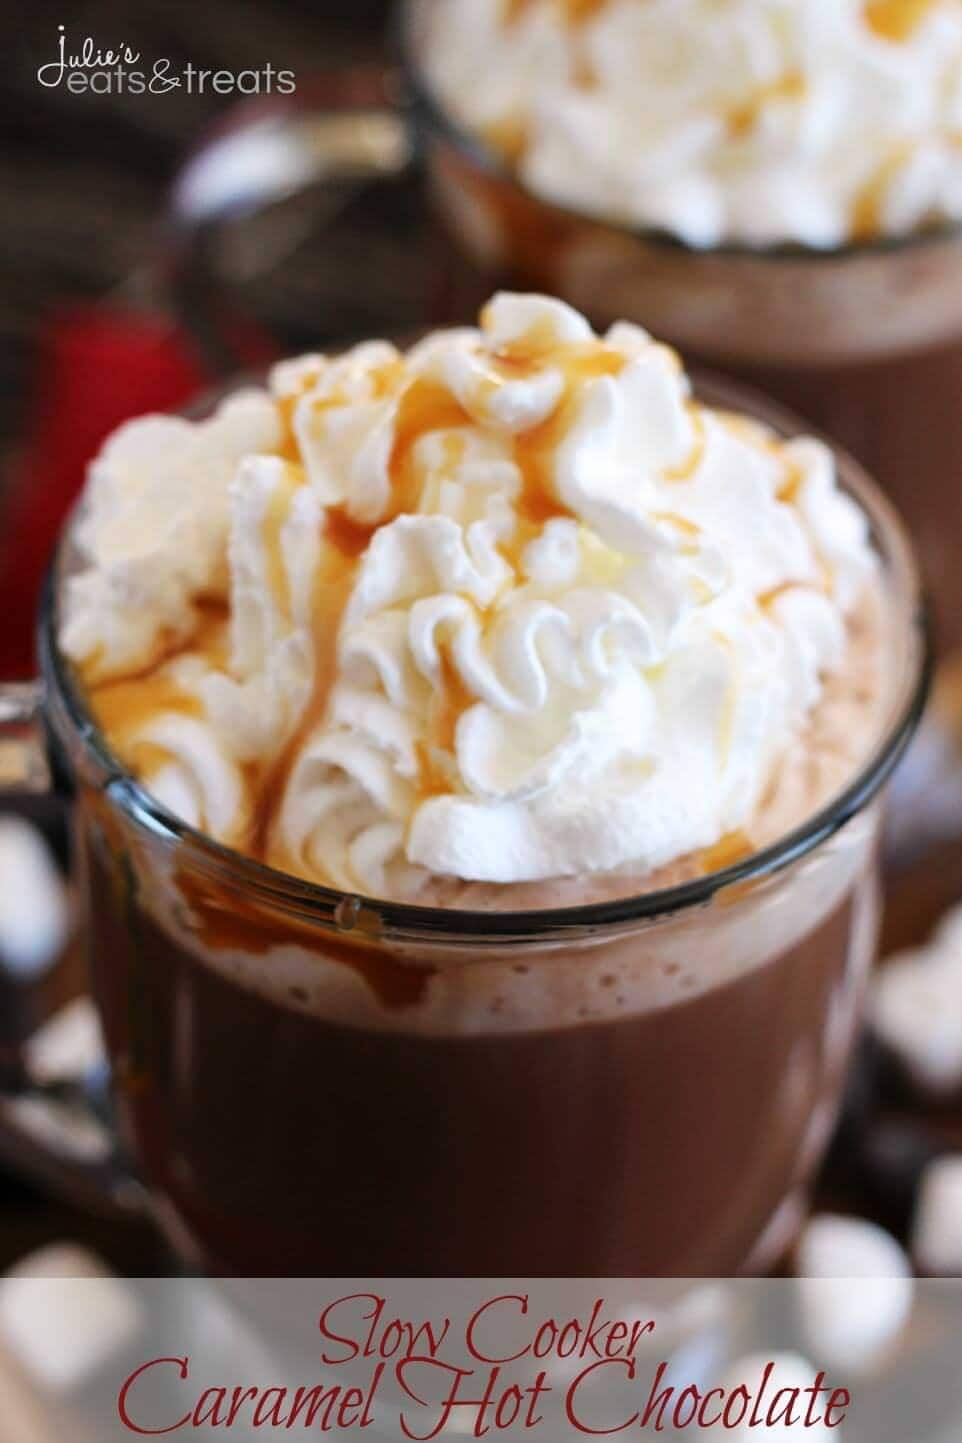 Slow Cooker Caramel Hot Chocolate ~ Slow Cooked, Rich, Hot Chocolate Loaded with Caramel and Topped with Whipped Cream and Caramel!